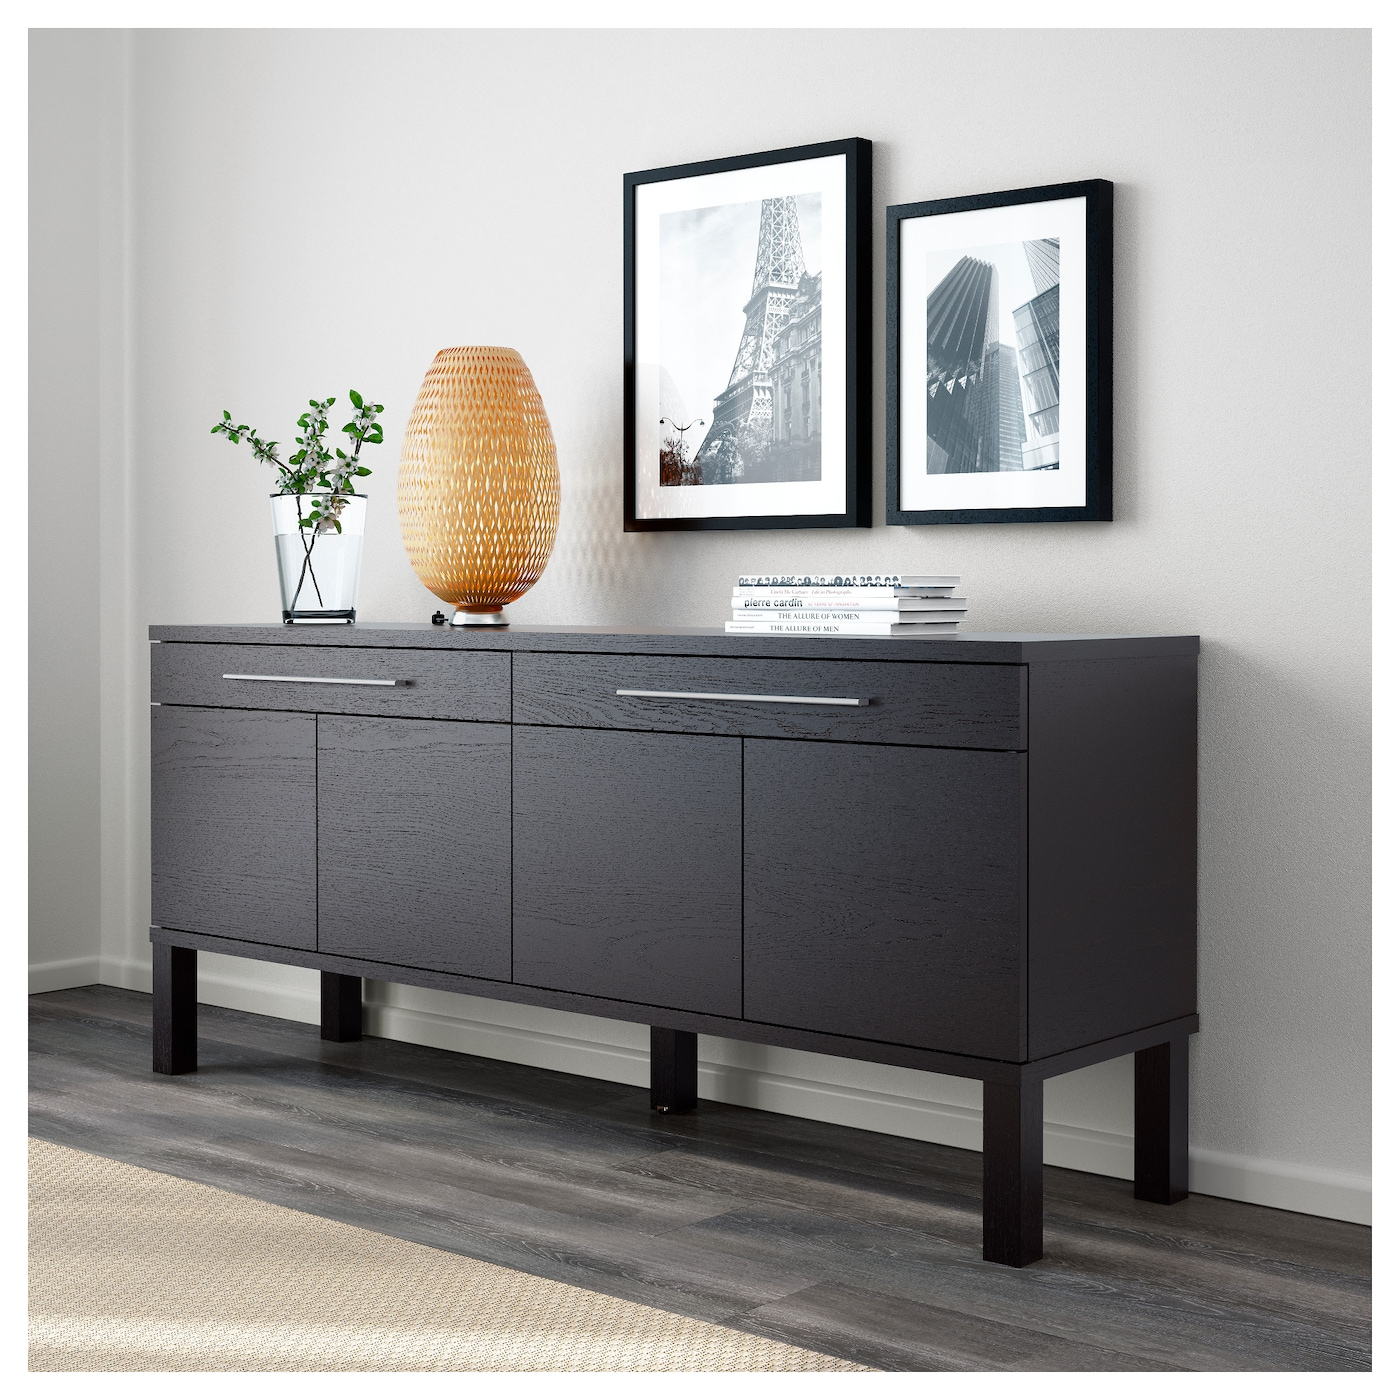 Bjursta sideboard brown black 155x68 cm ikea - Meuble a peindre ikea ...